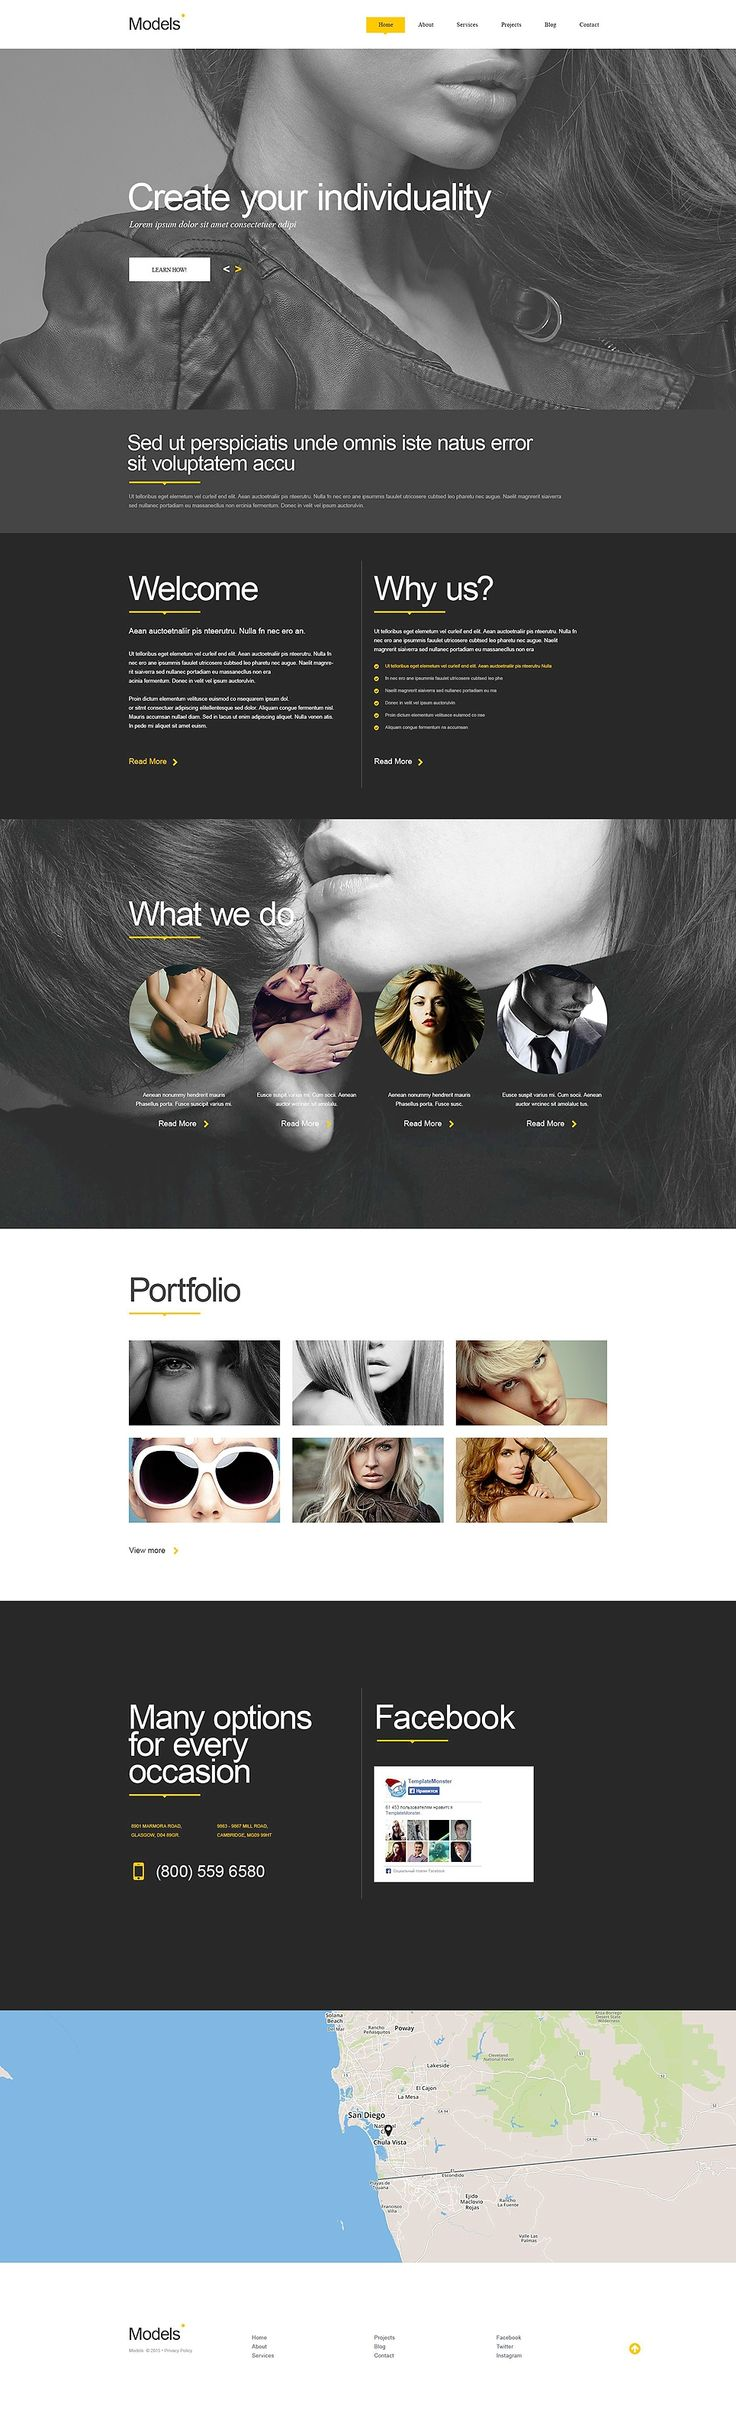 339 best Graphic Design Inspiration images on Pinterest | Brand ...